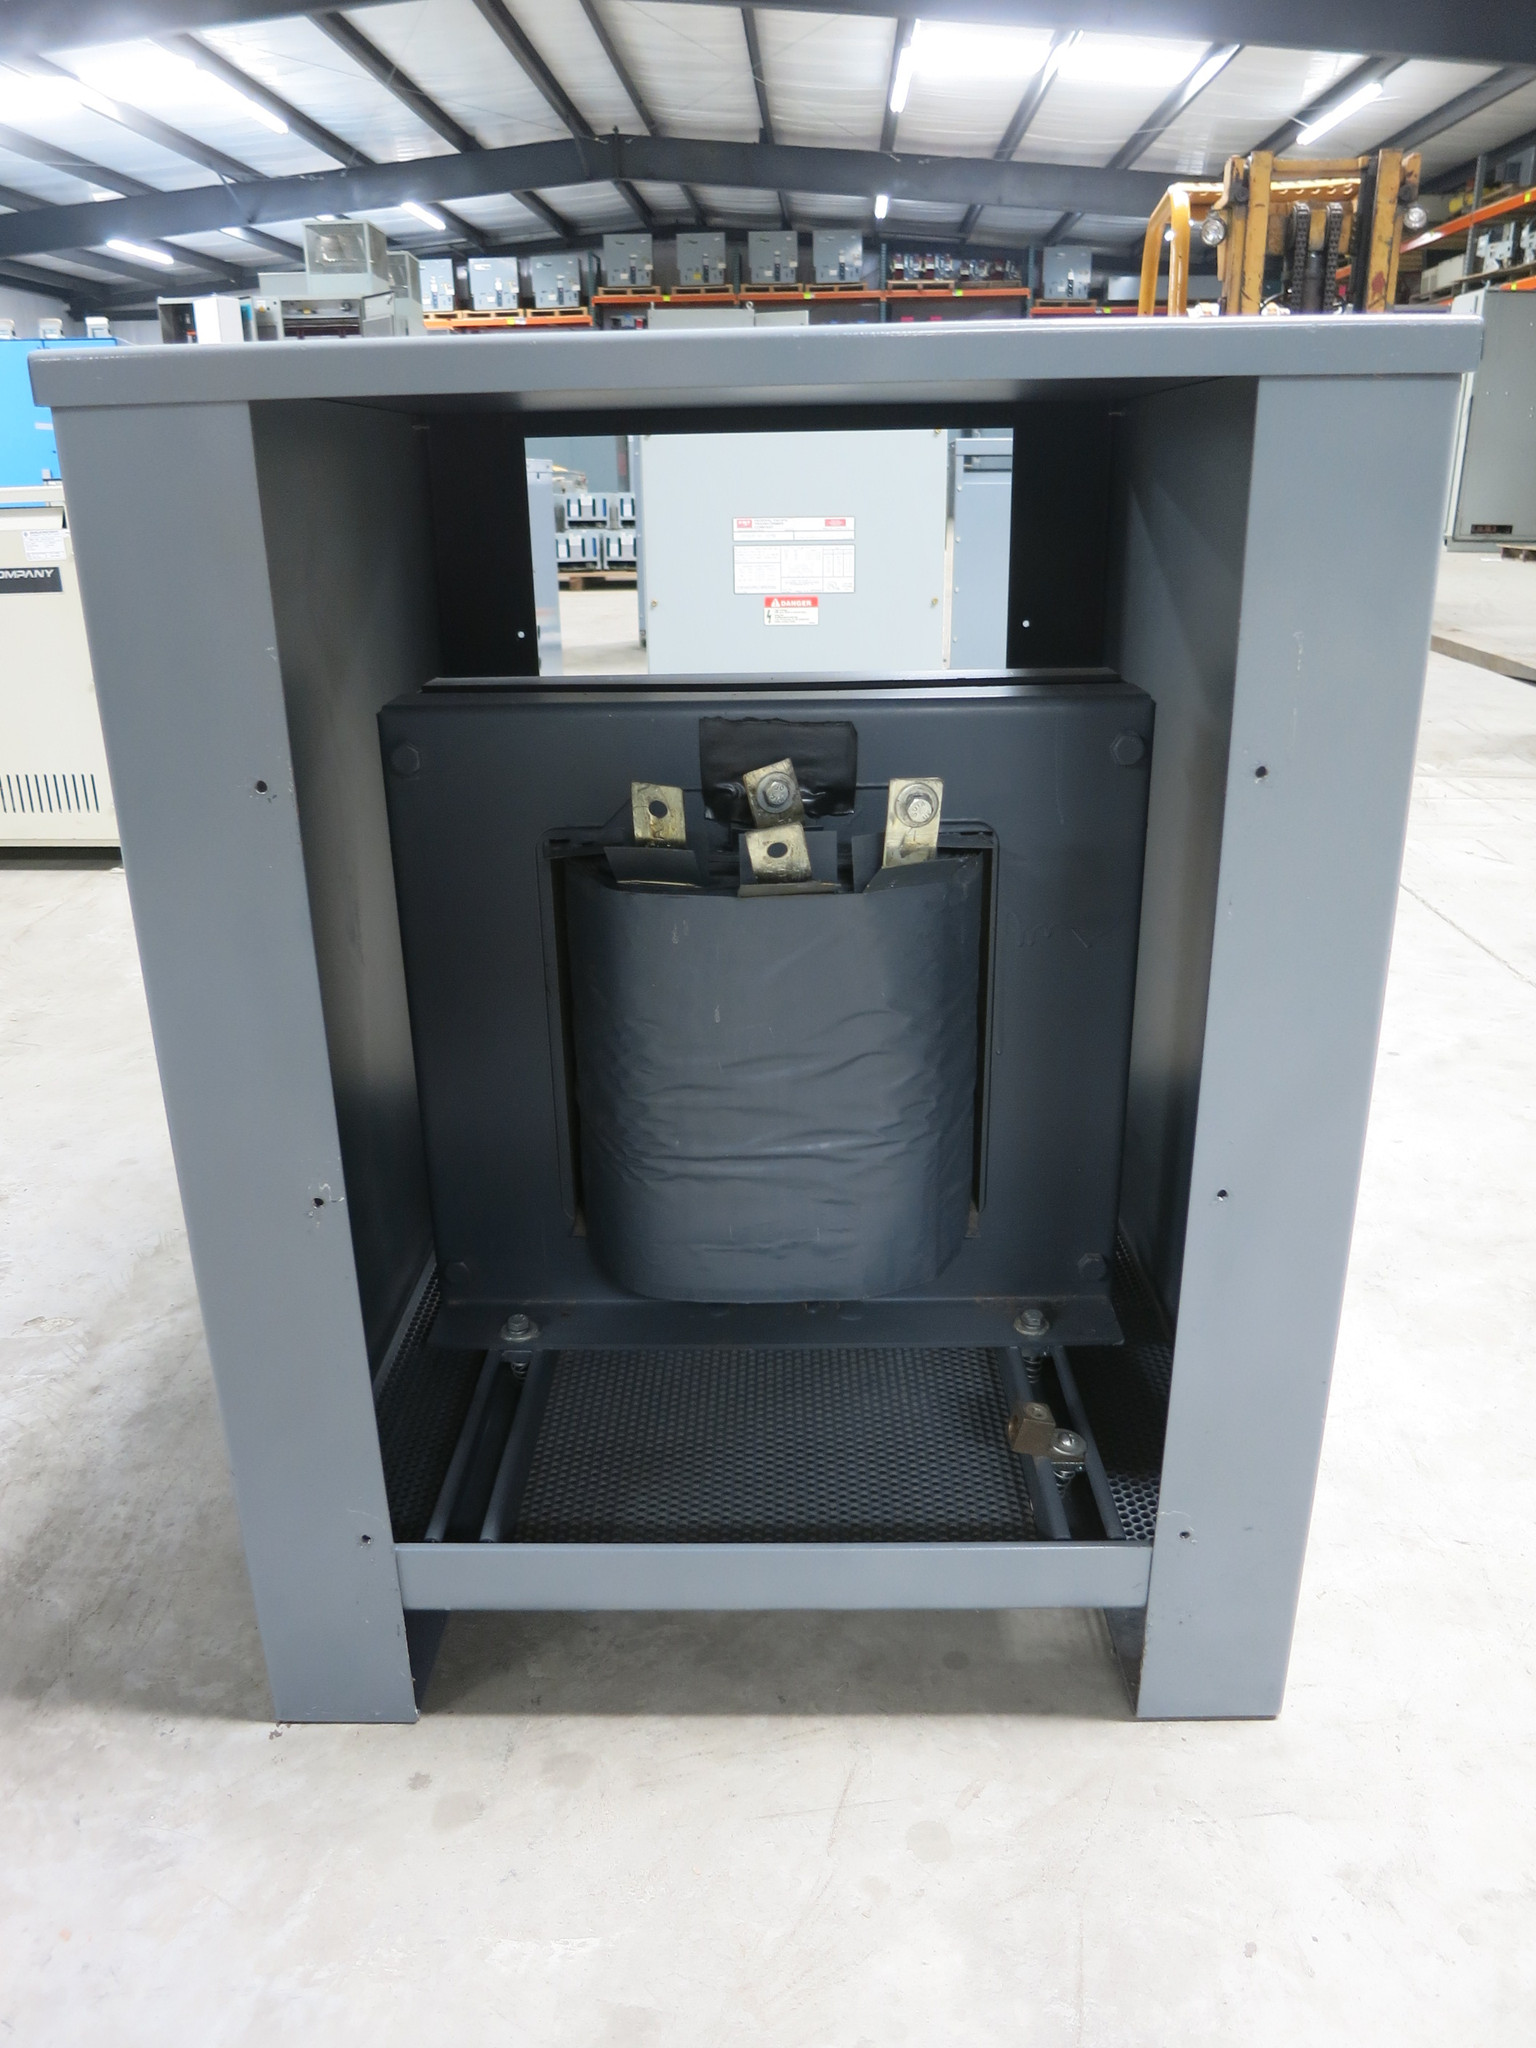 NWL 100007A Current Limiting Reactor 160/171 Amp 4/6/8 mH 480V 1PH  Transformer (DW1544-1)